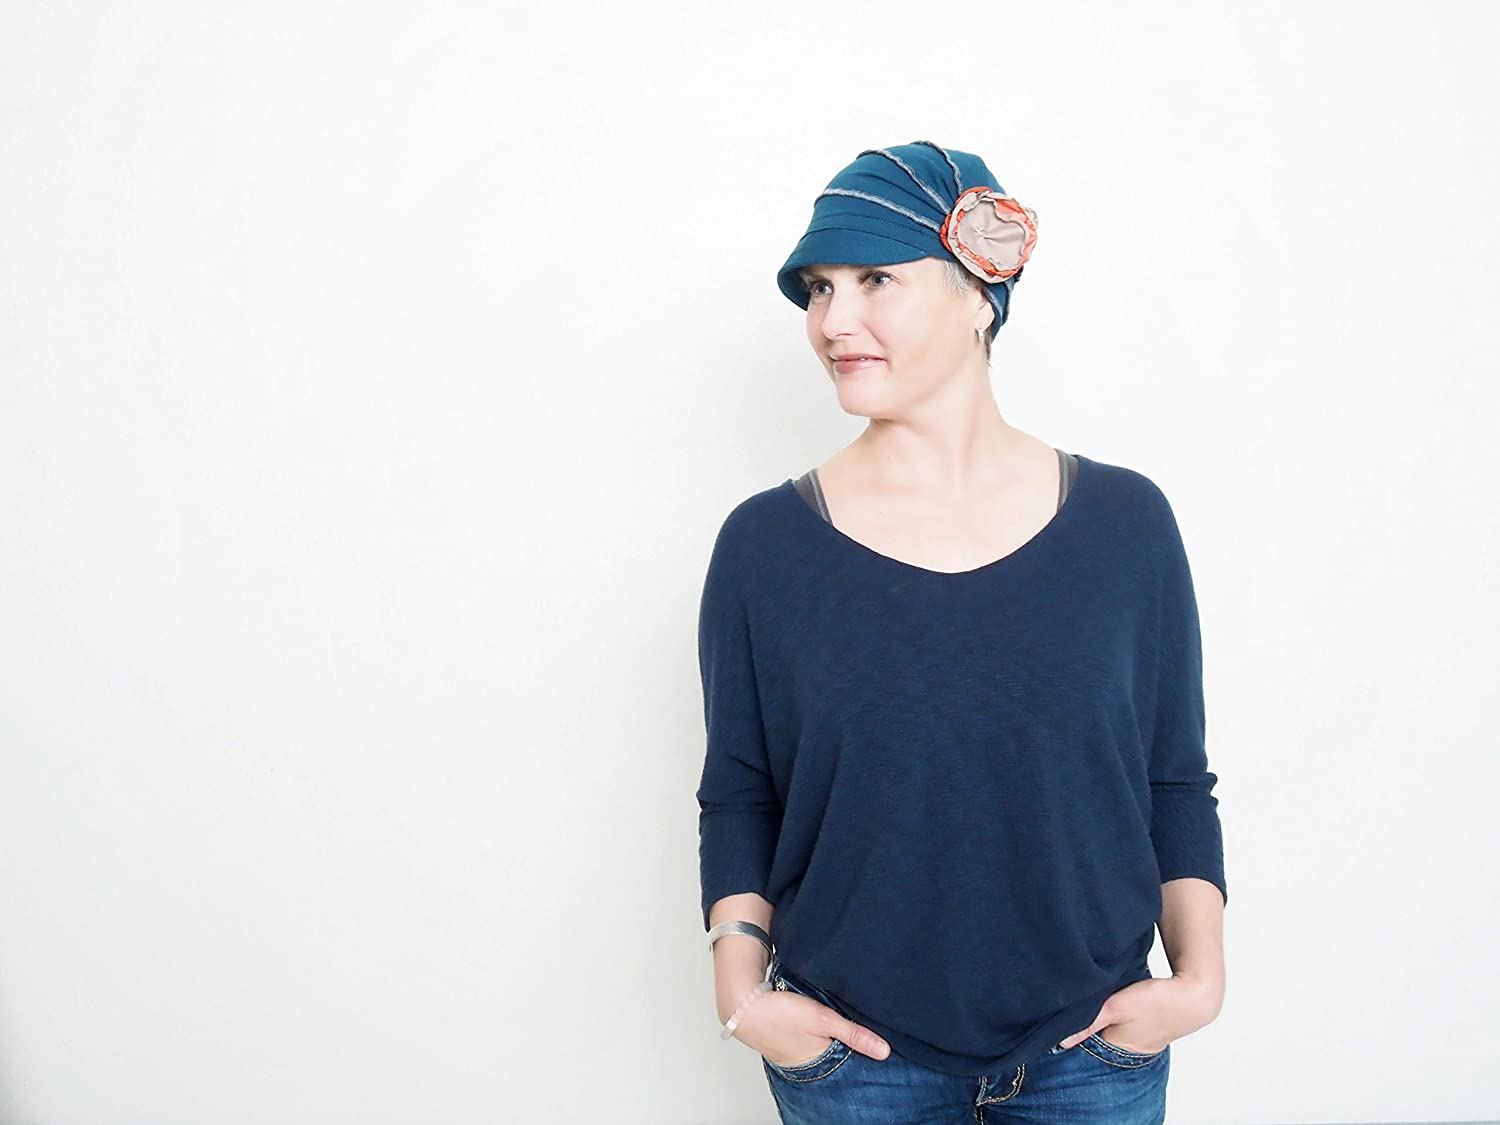 Cancer Hat for Women Cozy Cap for girls Grey Chemo Beanie Women Fashion Hat Old Fashion Handmade by Muluk Cotton Chemo Hat